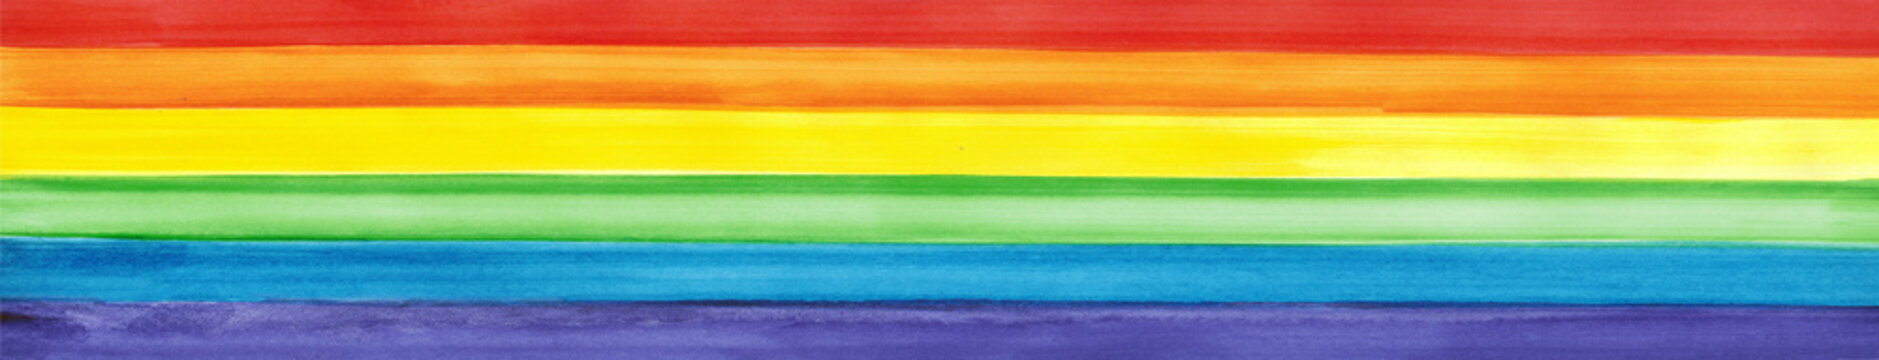 LGBT pride rainbow flag. Symbol of sexual minorities and tolerance. LGBTQ, LGBT + community concept. Watercolor painted background with copy space for design. Wide banner. Website header.